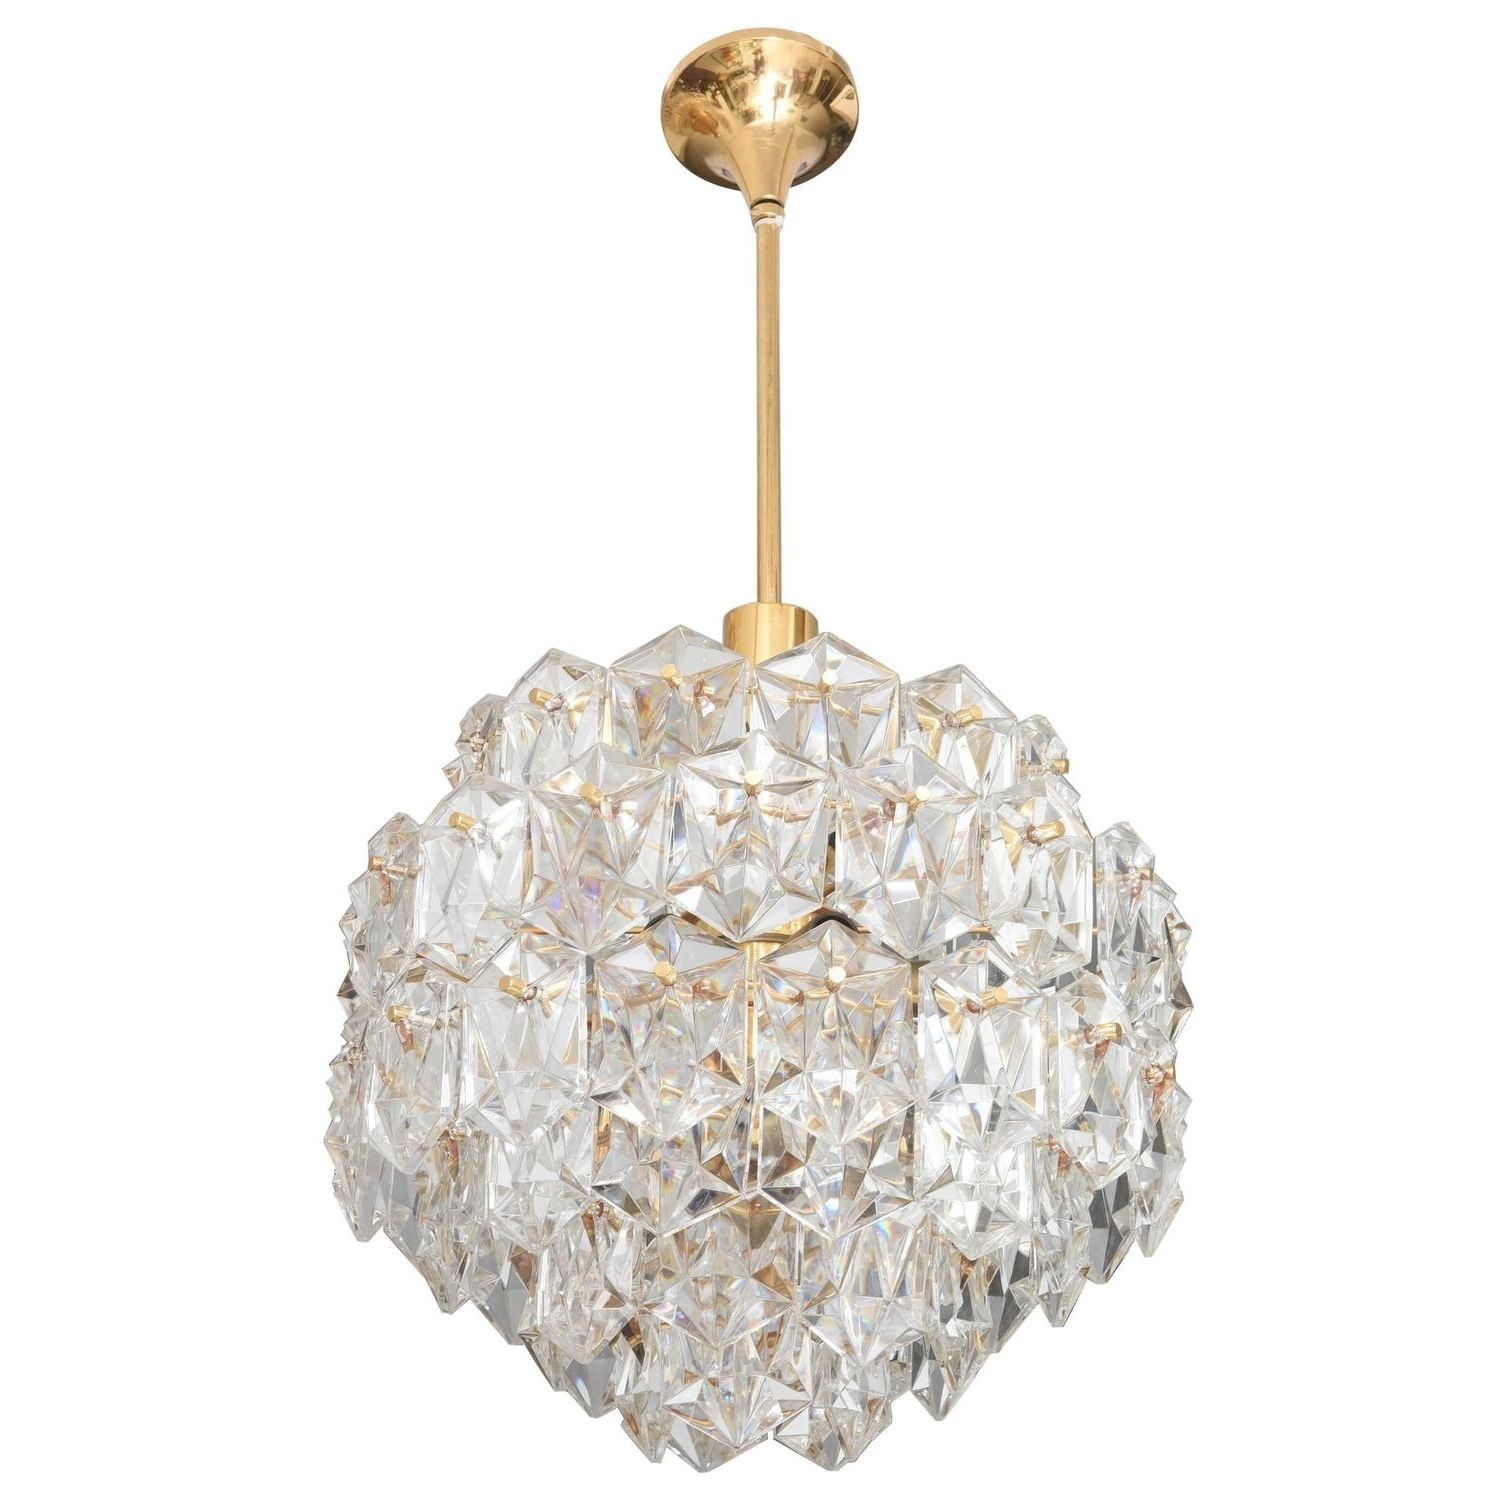 Gold Modern Chandelier Regarding Most Up To Date Mid Century Modern Chandelier, Gold Plated With Molded Crystals (View 10 of 20)